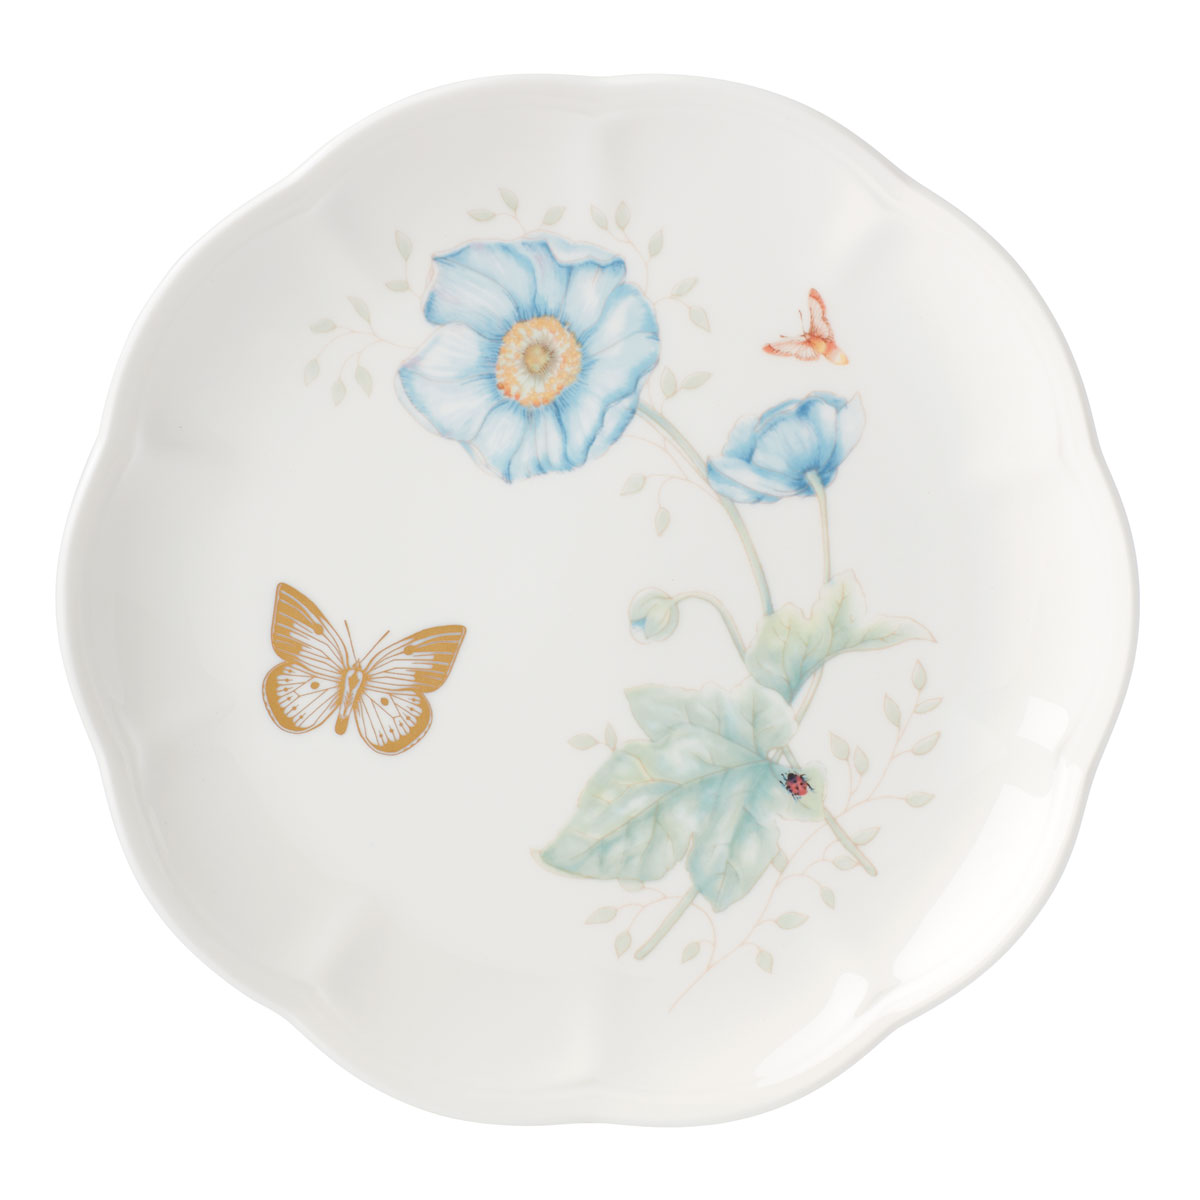 Lenox Butterly Meadow Gold Dinnerware Monarch Accent Plate Gold